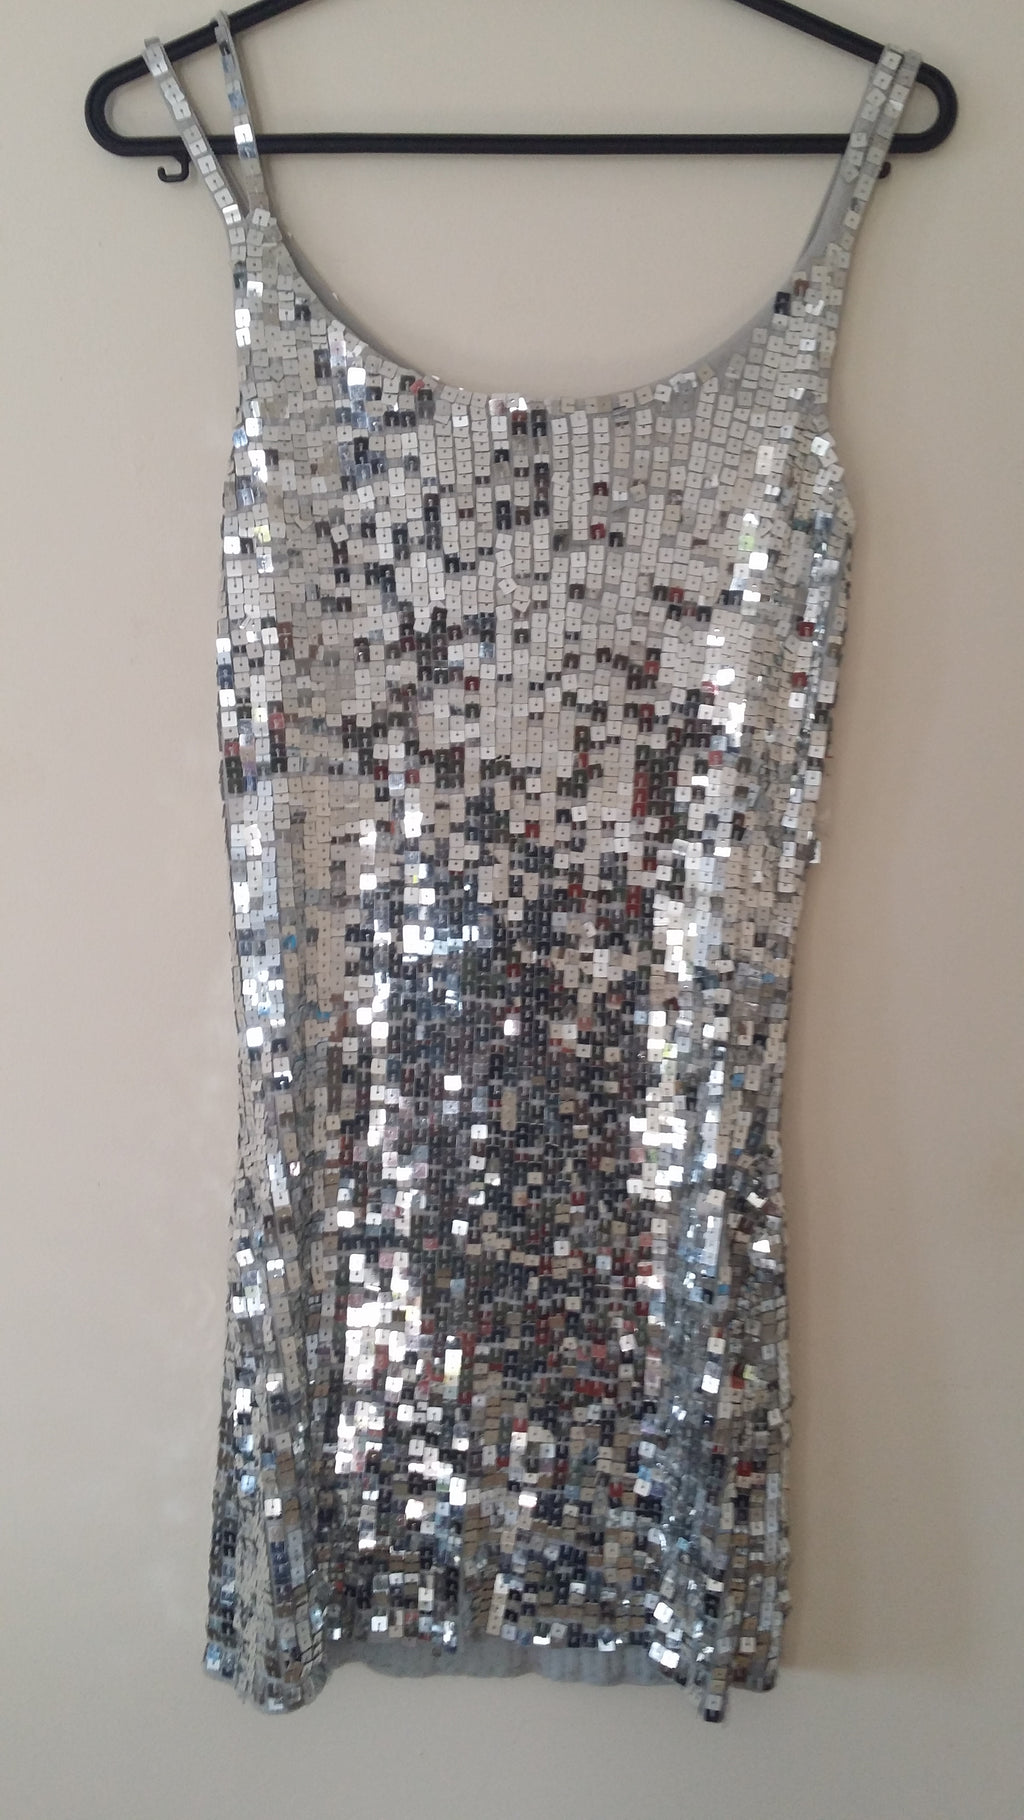 silver glittery party shirt